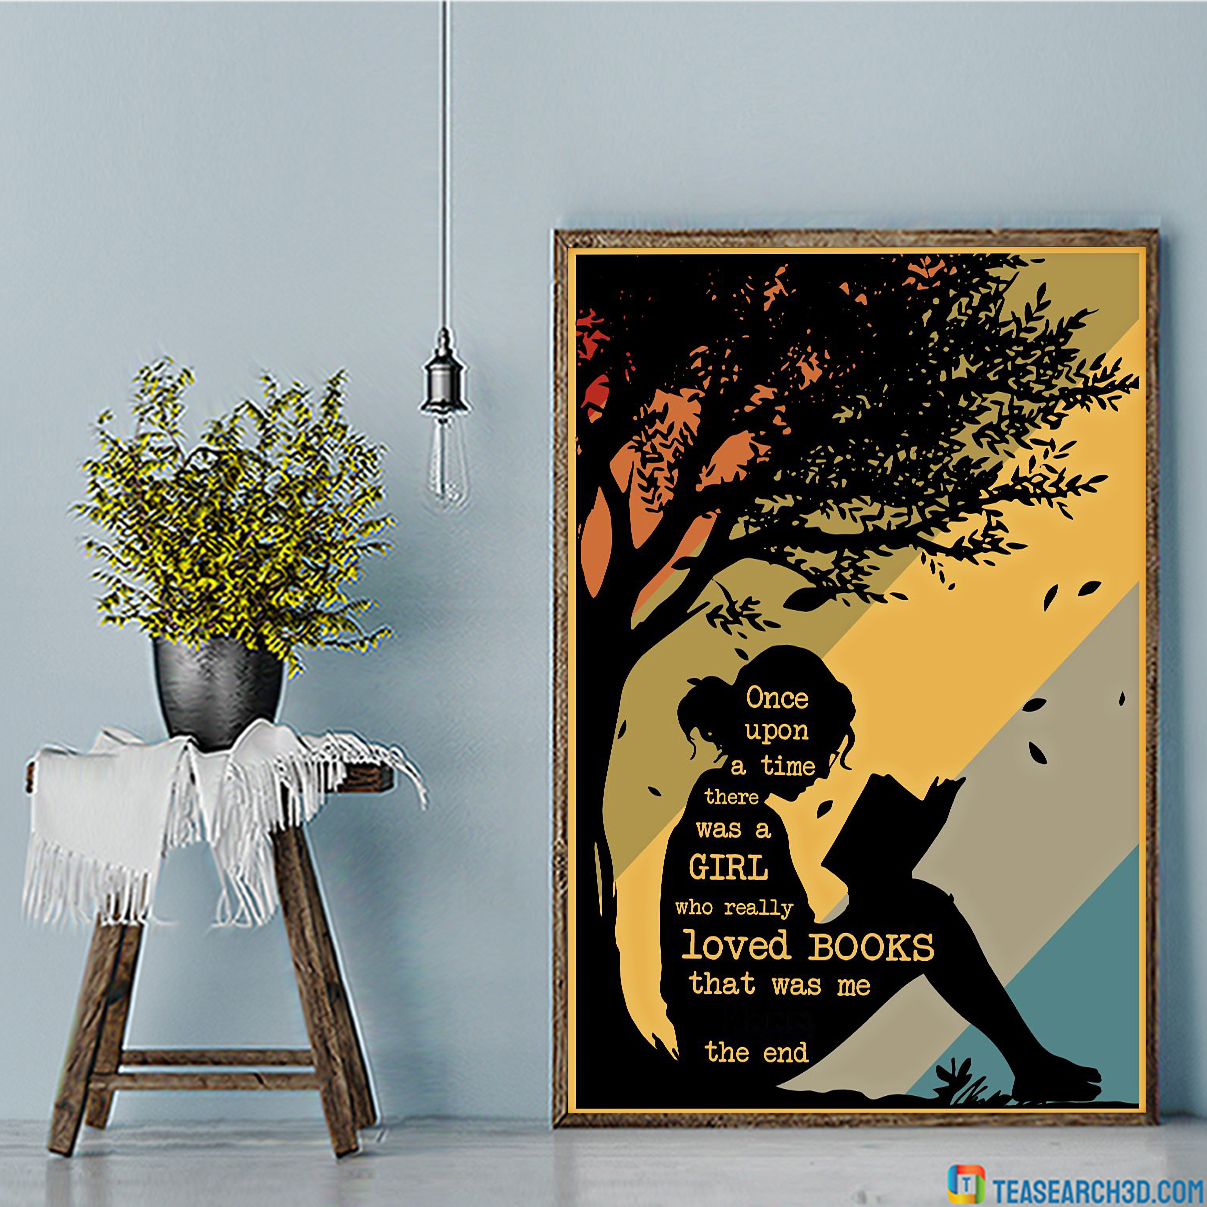 Personalized custom name once upon a time there was a girl who really loved books poster A1